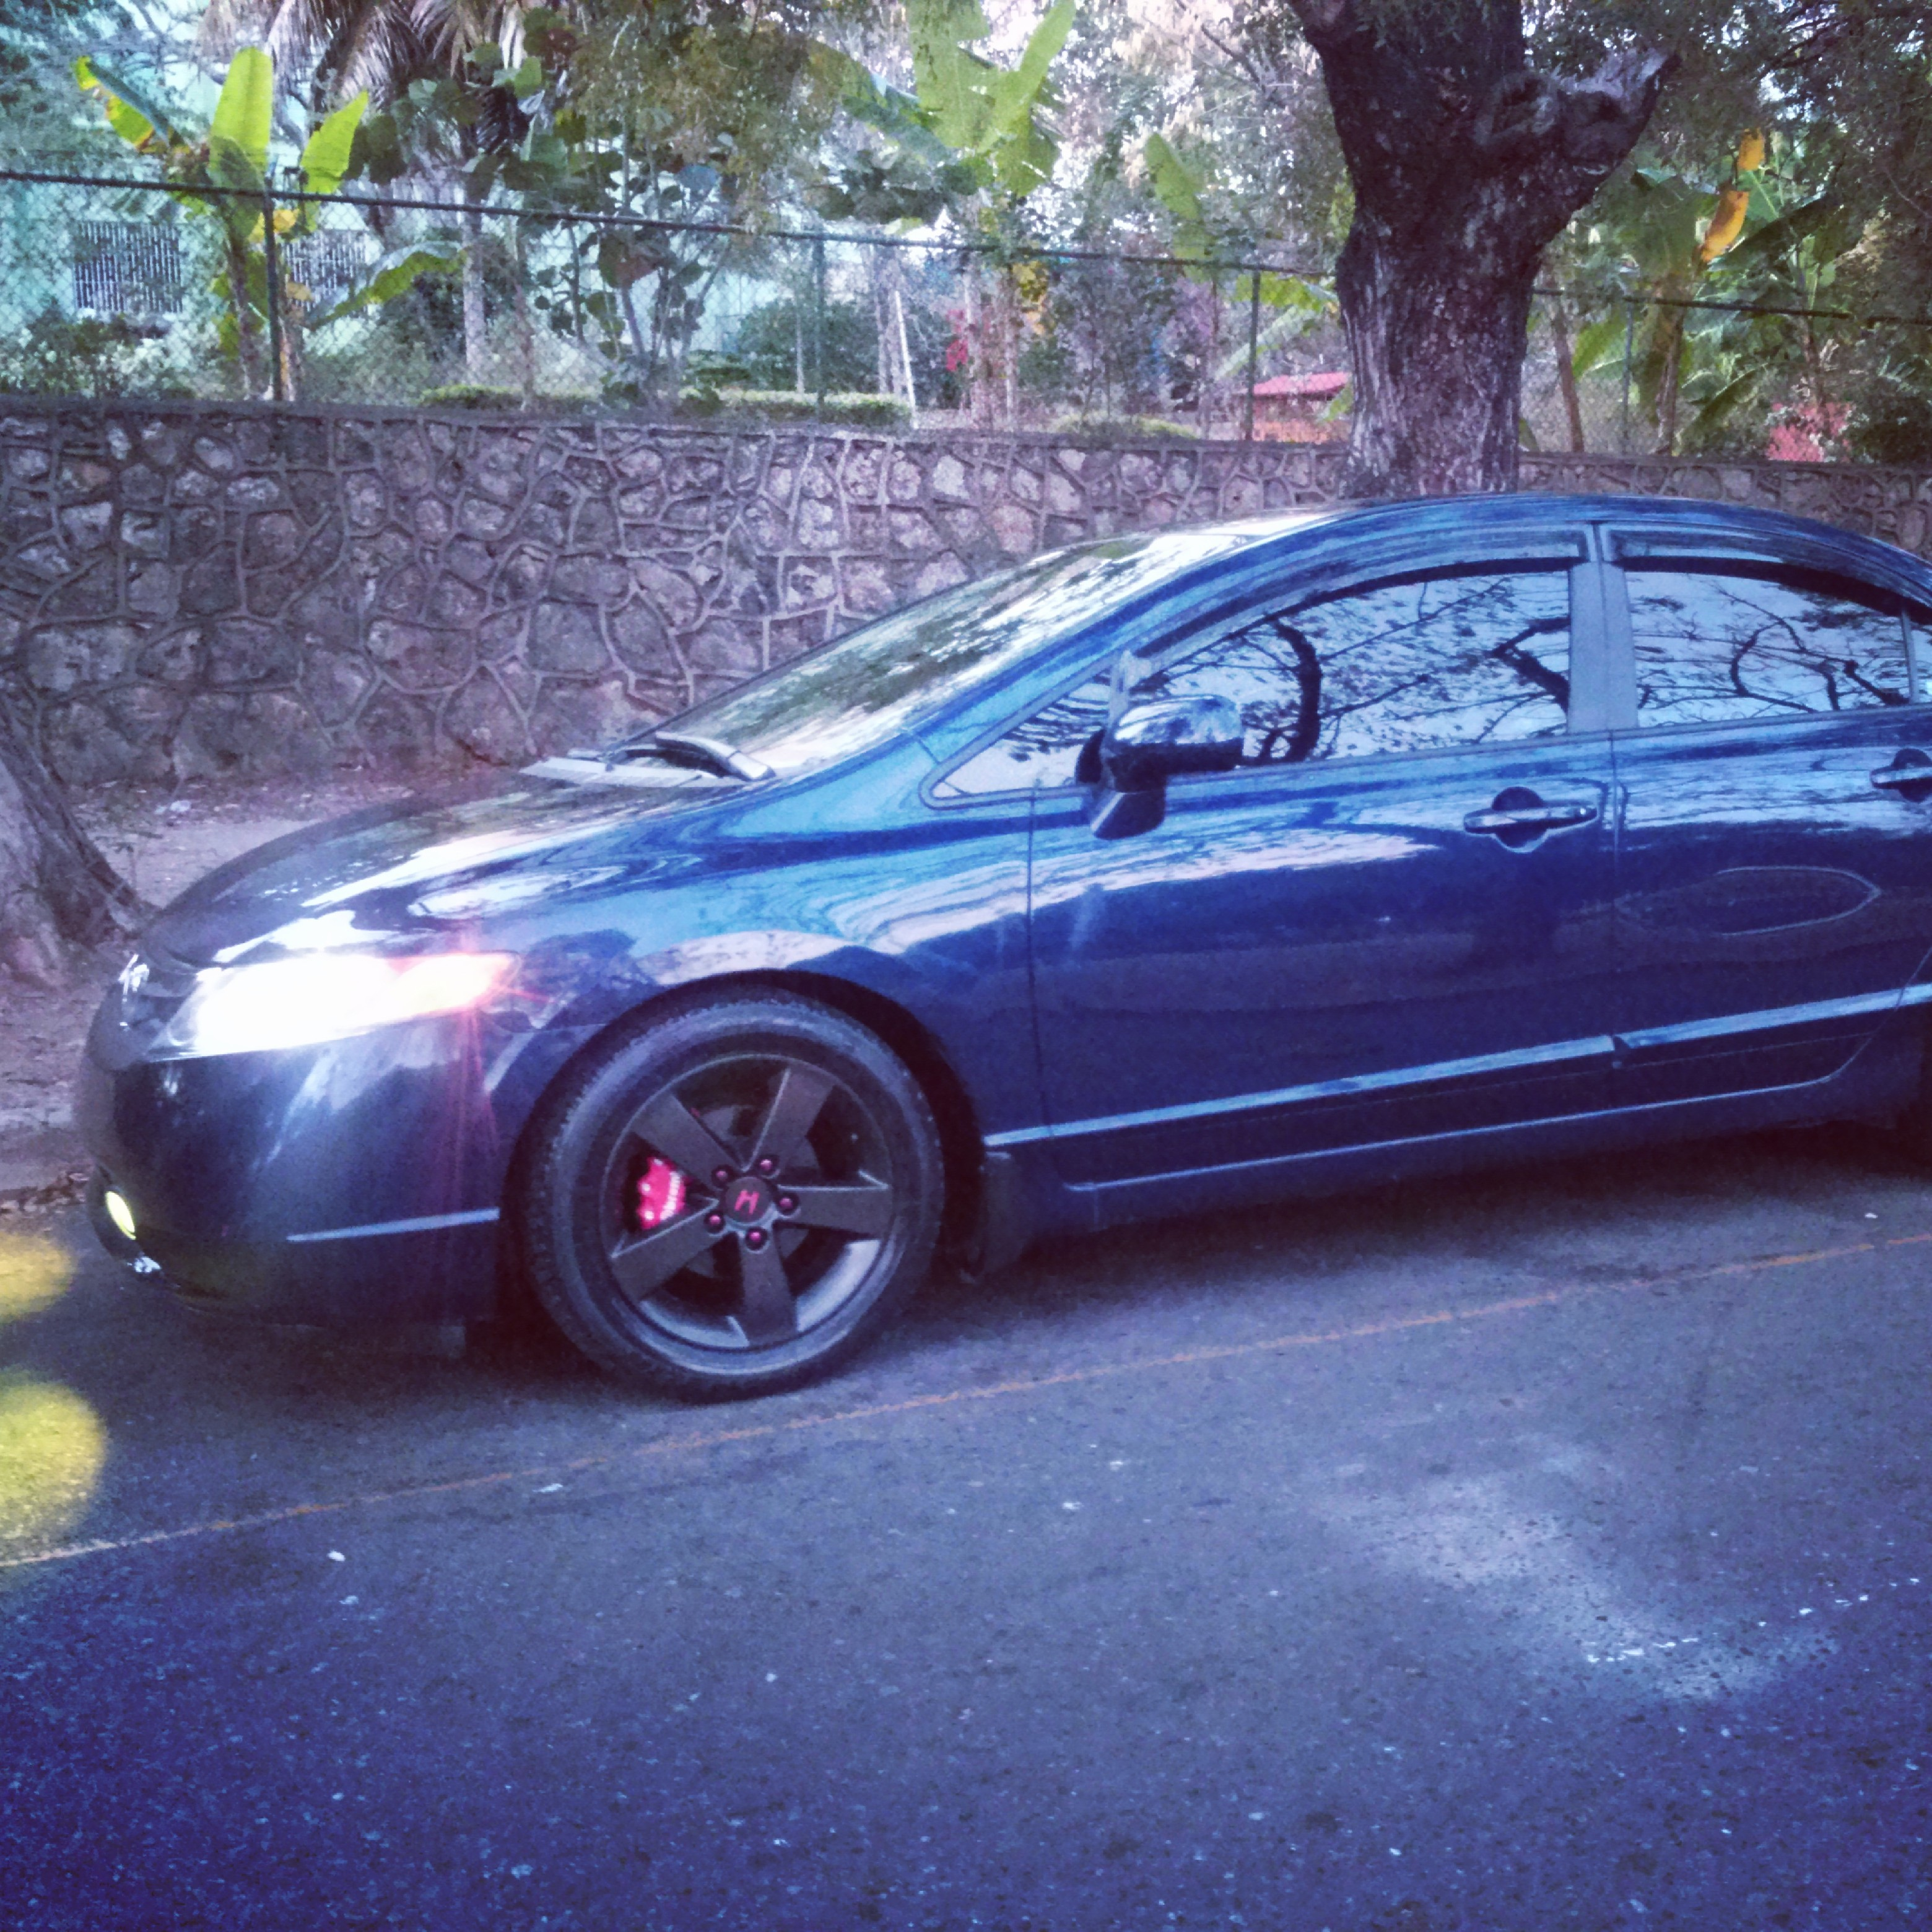 CivicBlueDreamDR 2006 Honda Civic